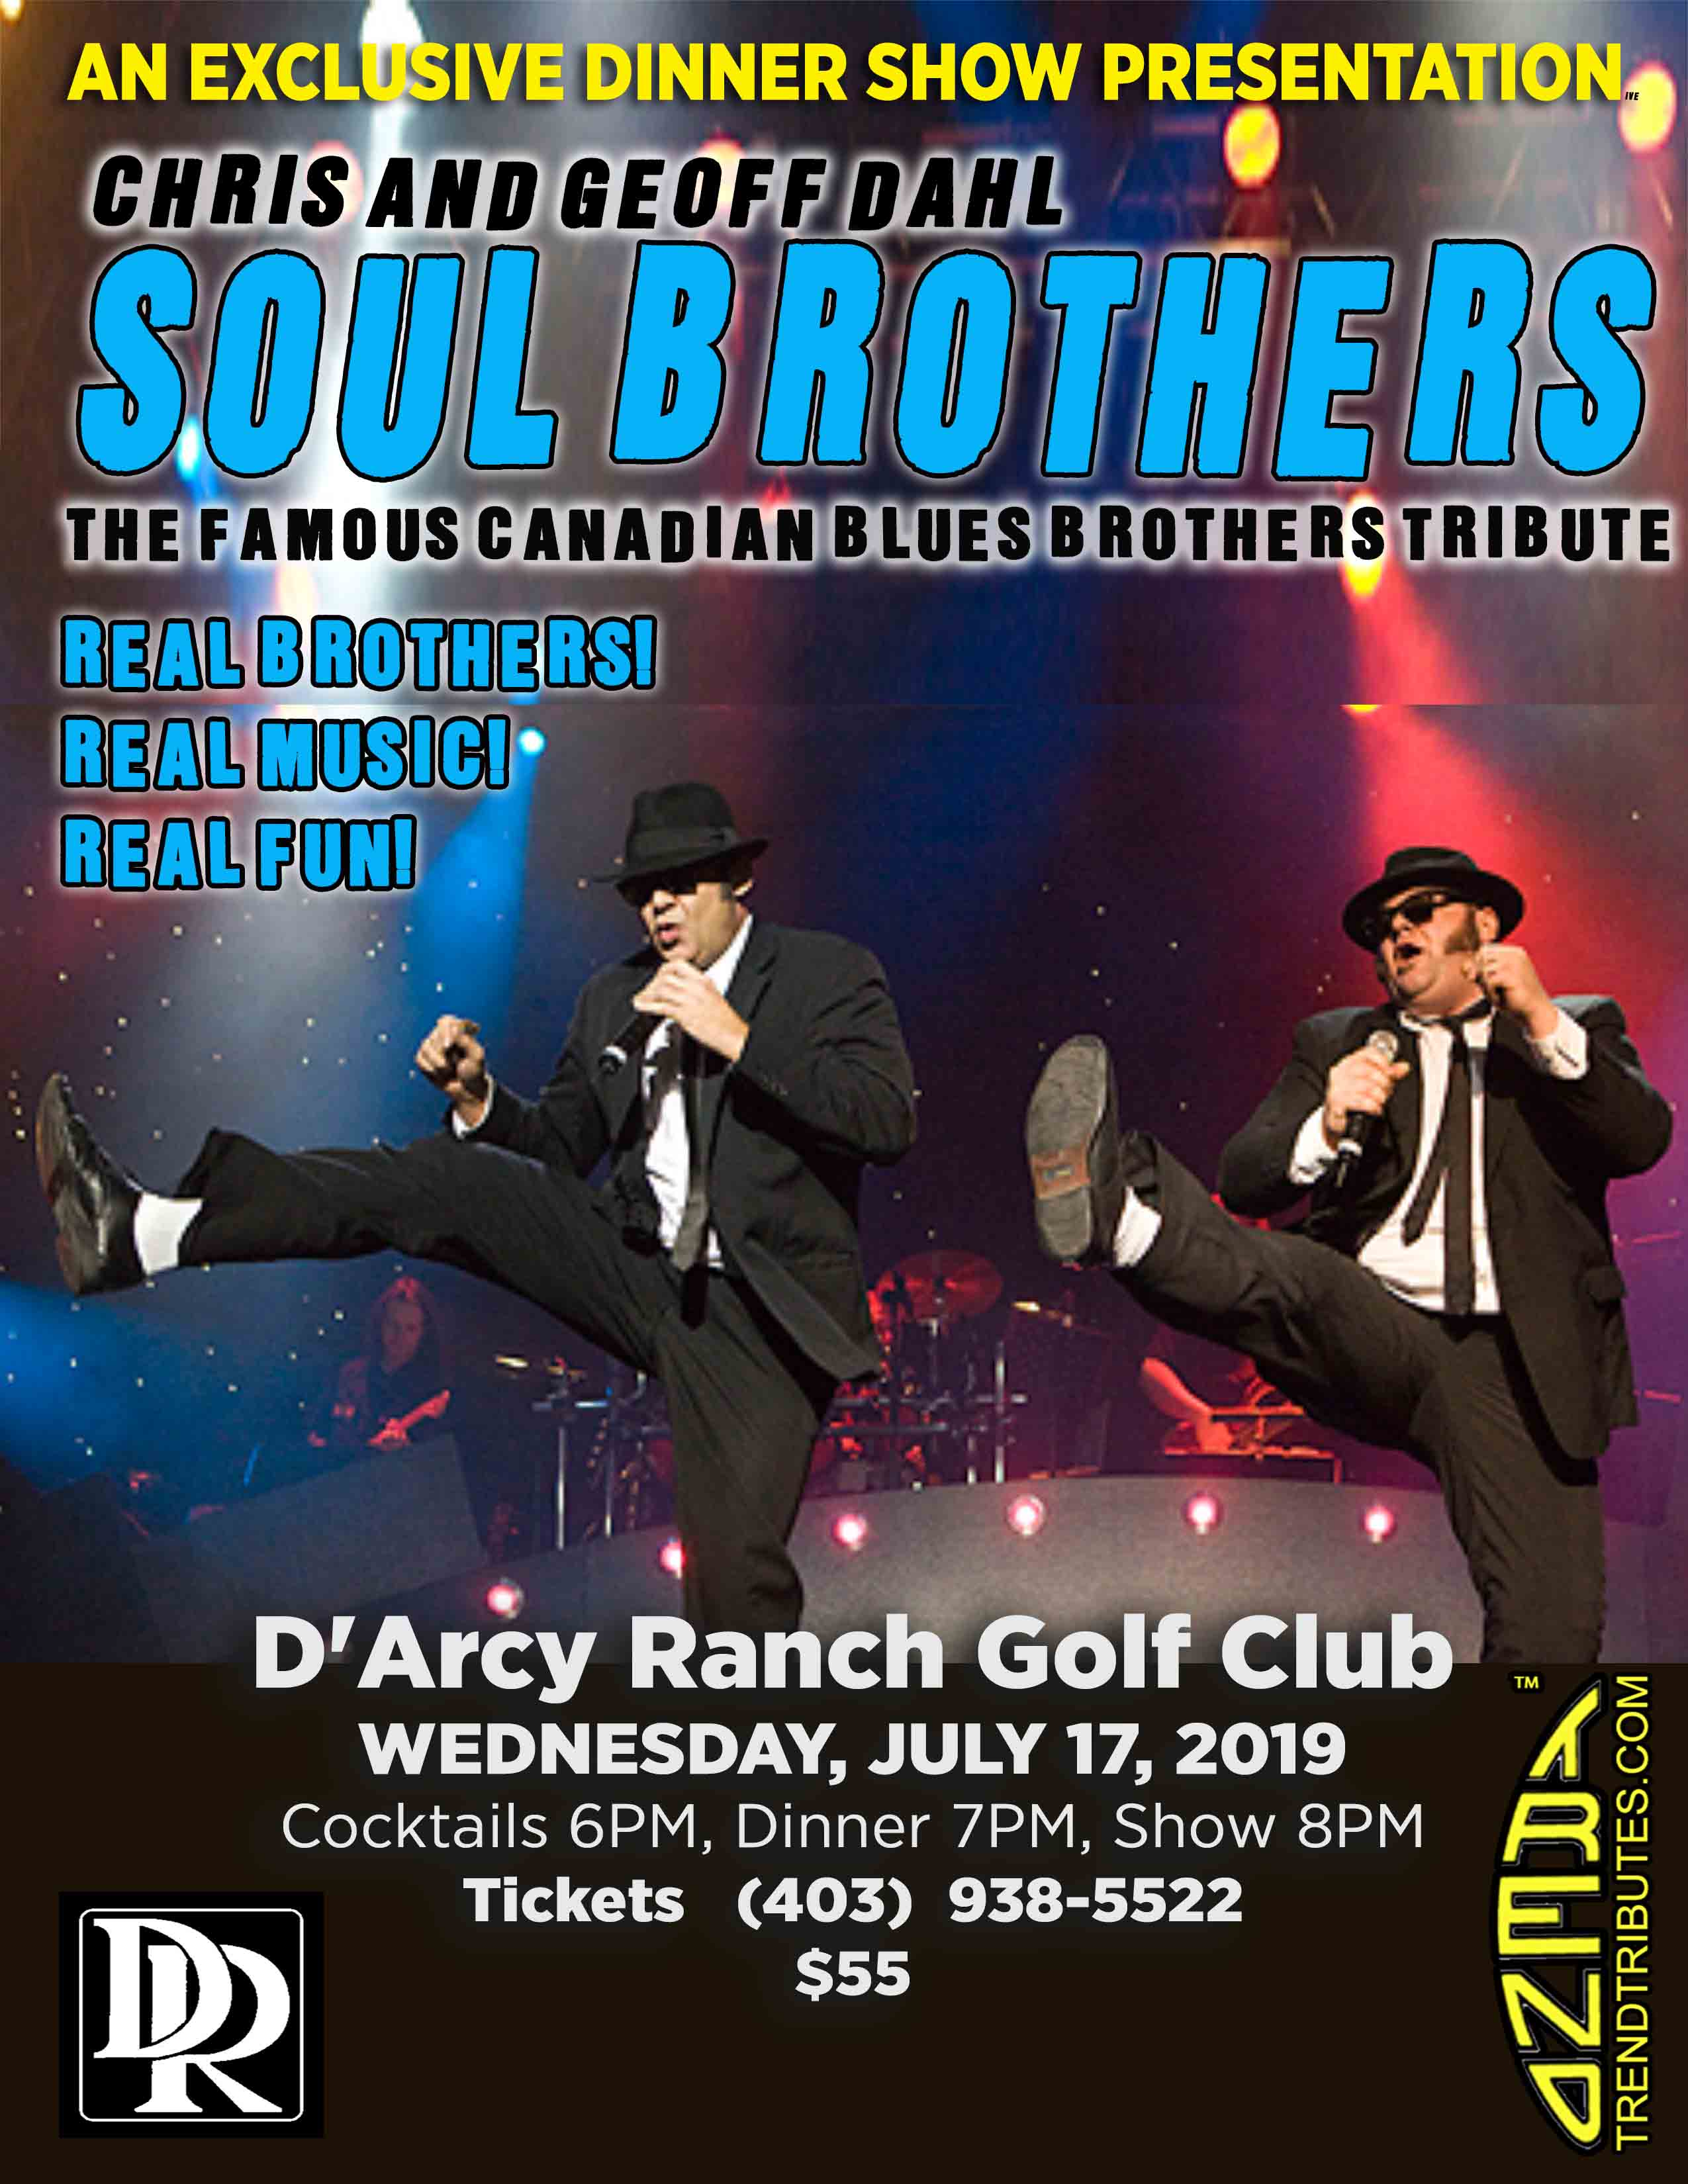 SOUL BROTHERS DARCY RANCH POSTER 8.5 X 11